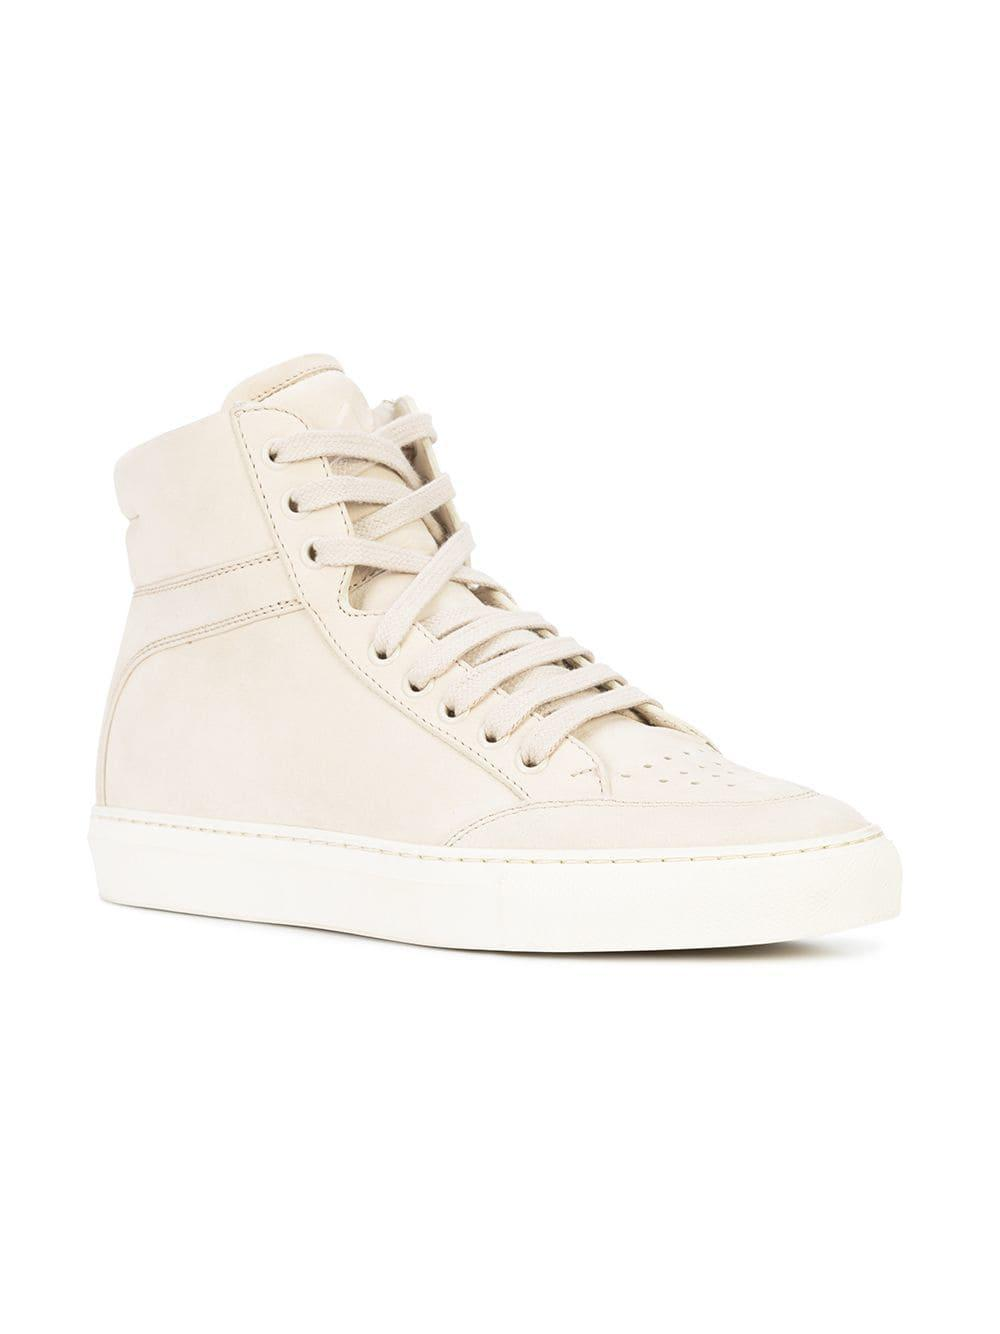 In Lyst Natural Crema Primo Koio w8xqp4RH